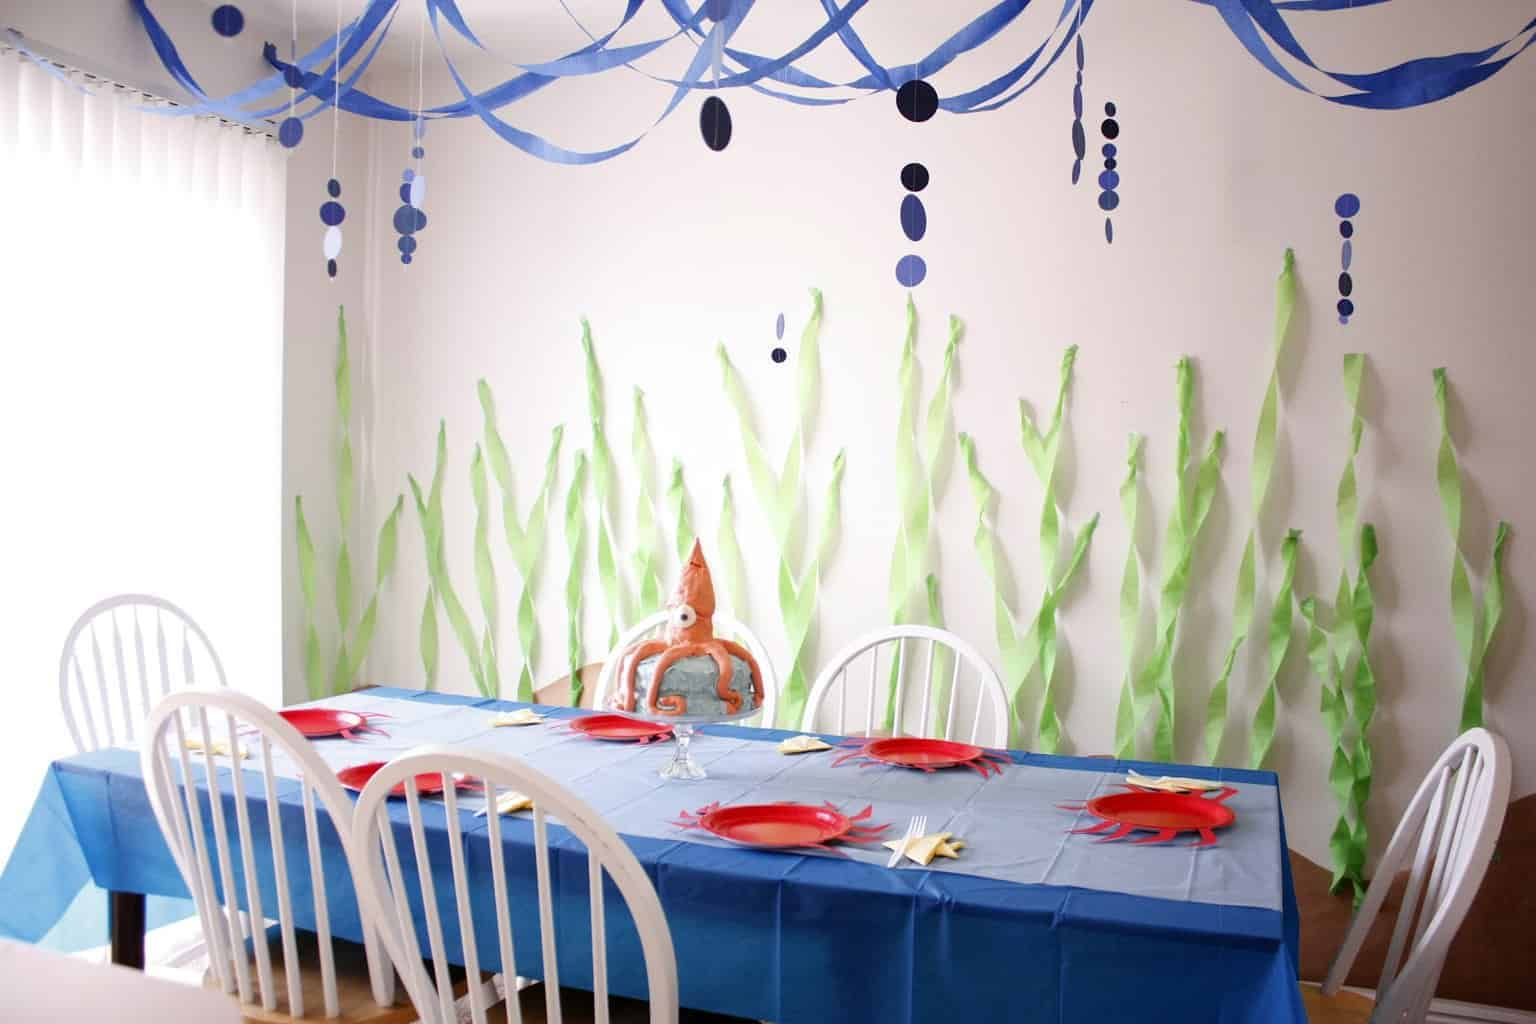 Ocean Theme Decorating Ideas Under The Sea Theme Party Ideas Just A Mum